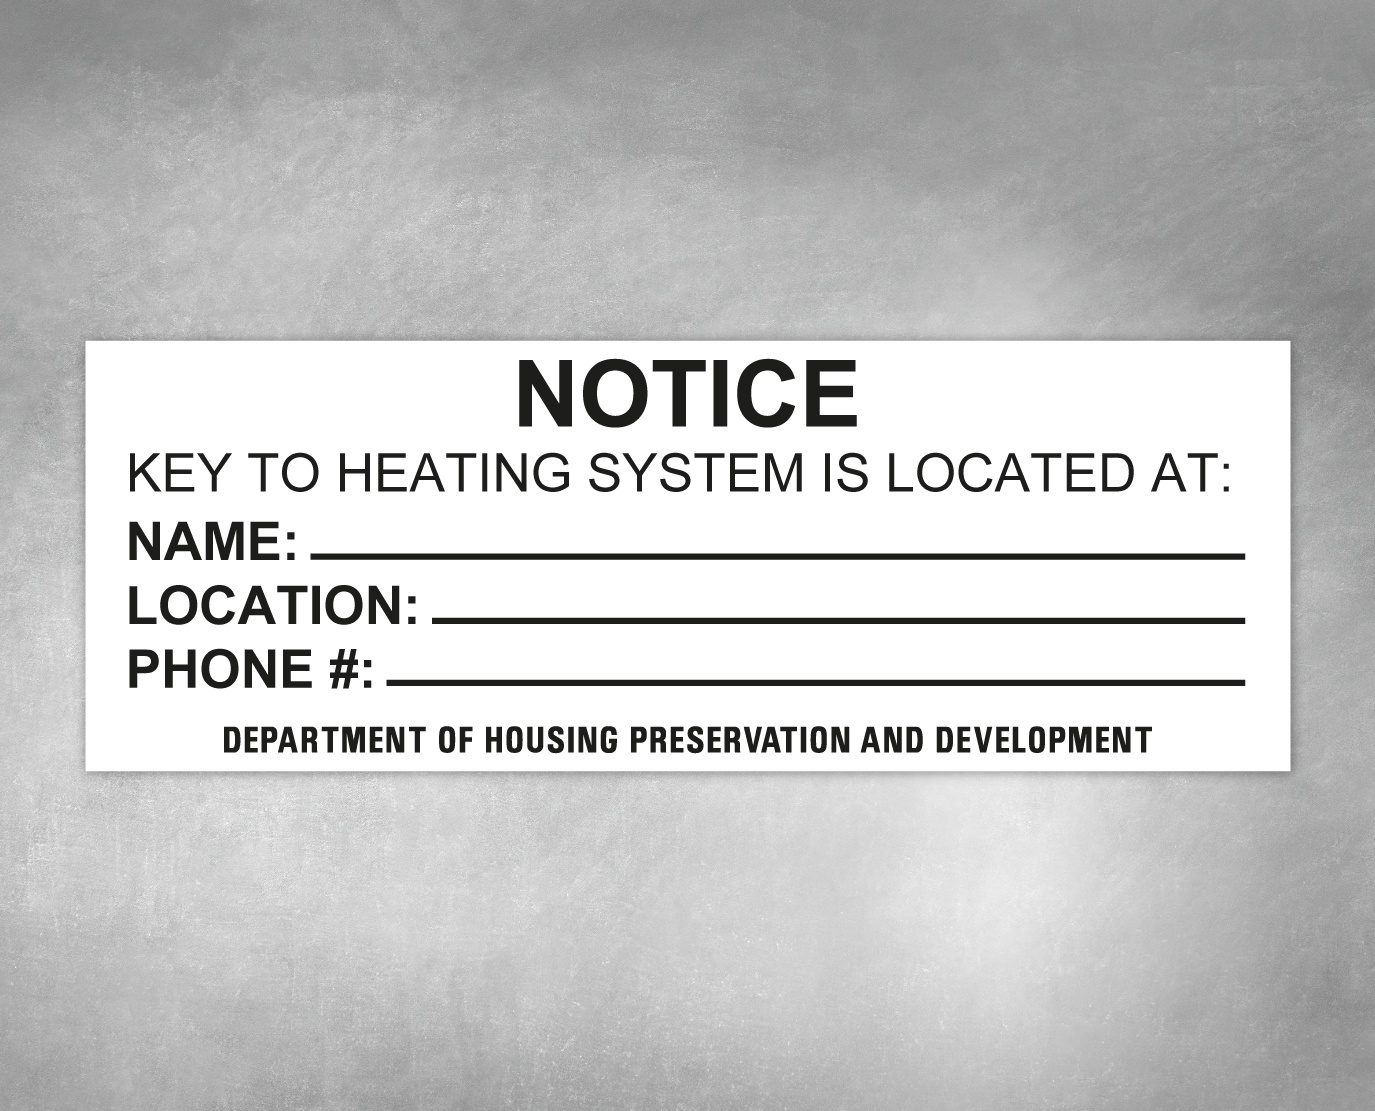 key to heating system building sign